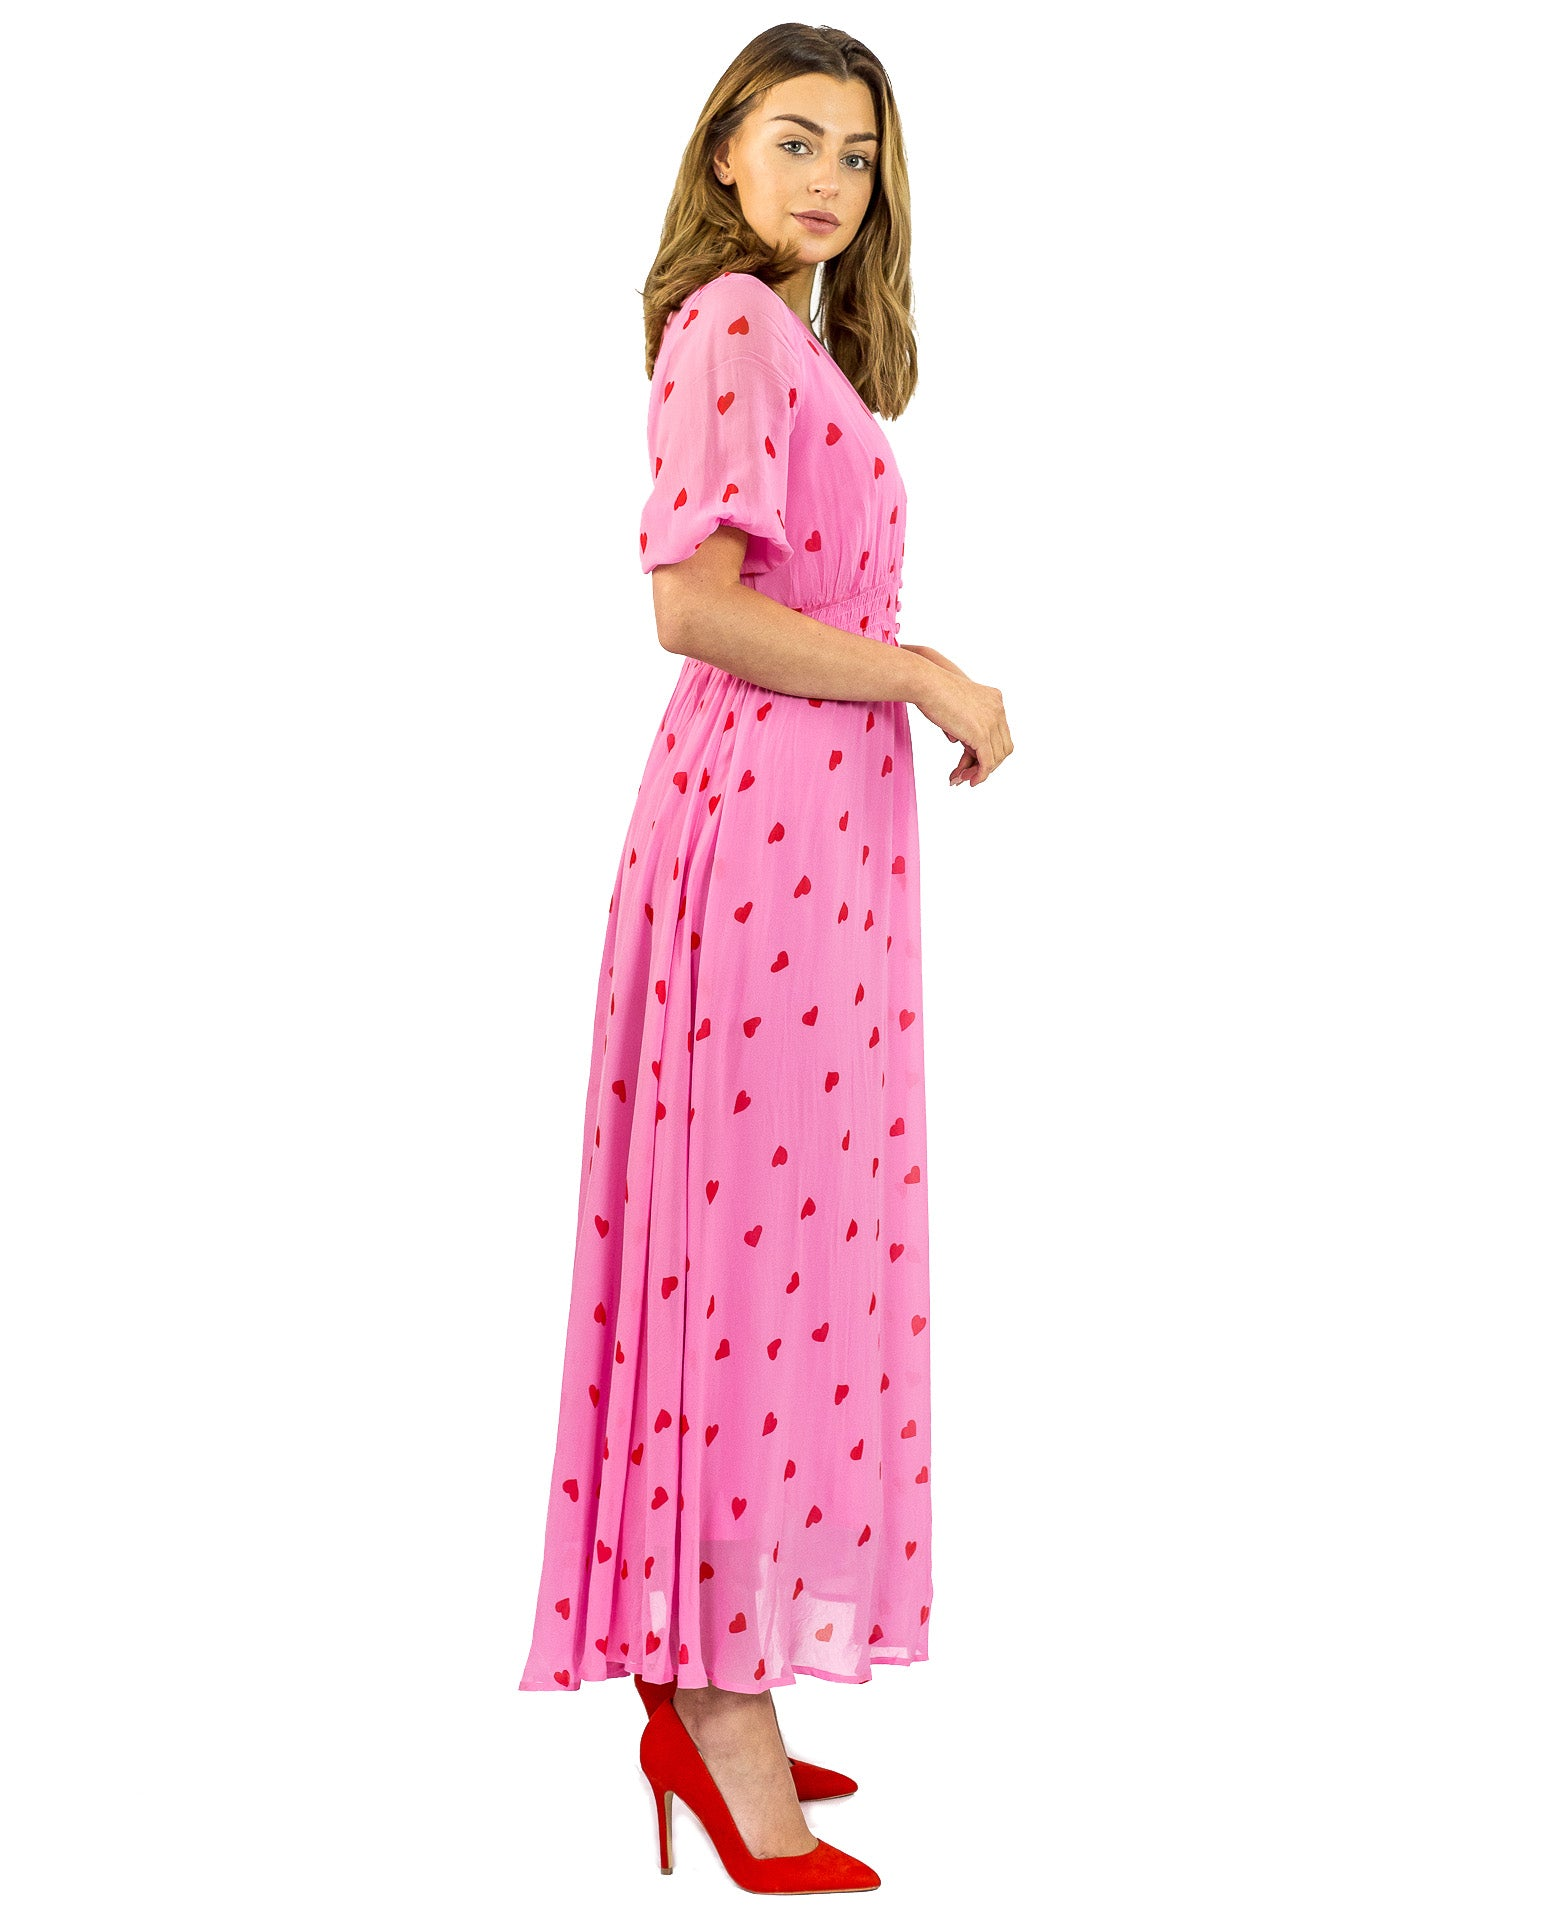 GHOST VALENTINA SWEETIE PINK MAXI DRESS